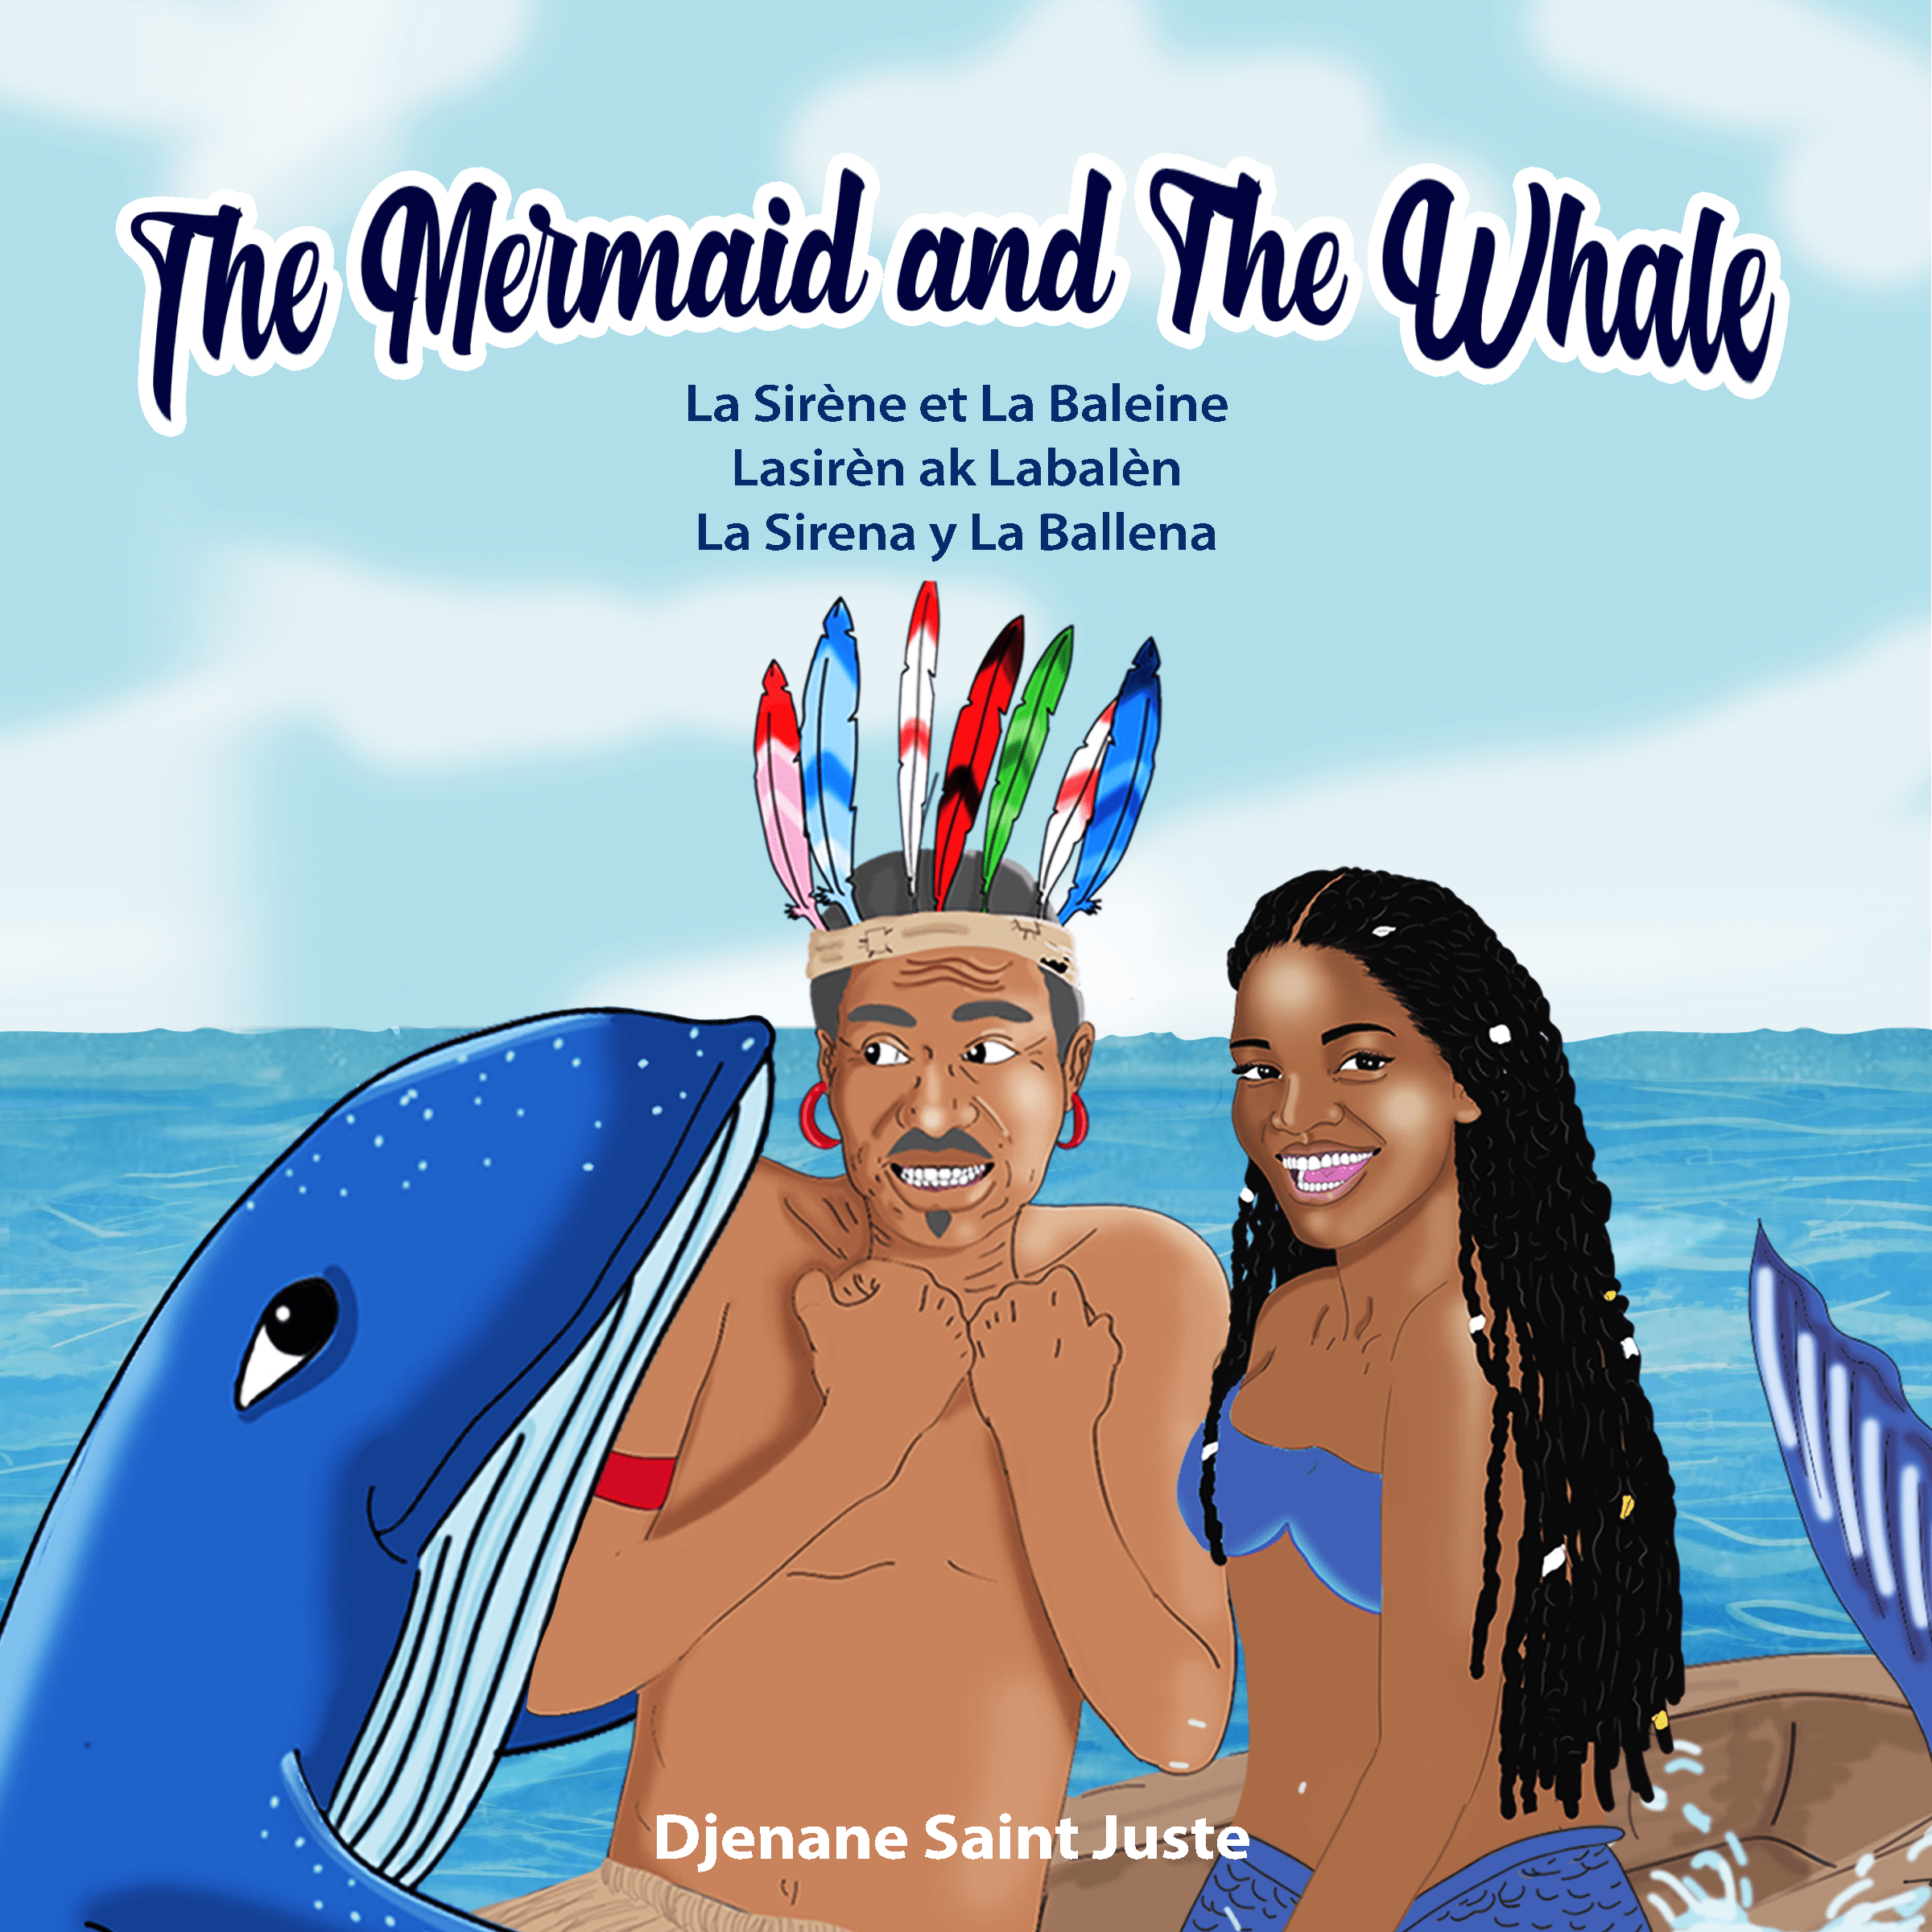 'The Mermaid and the Whale'